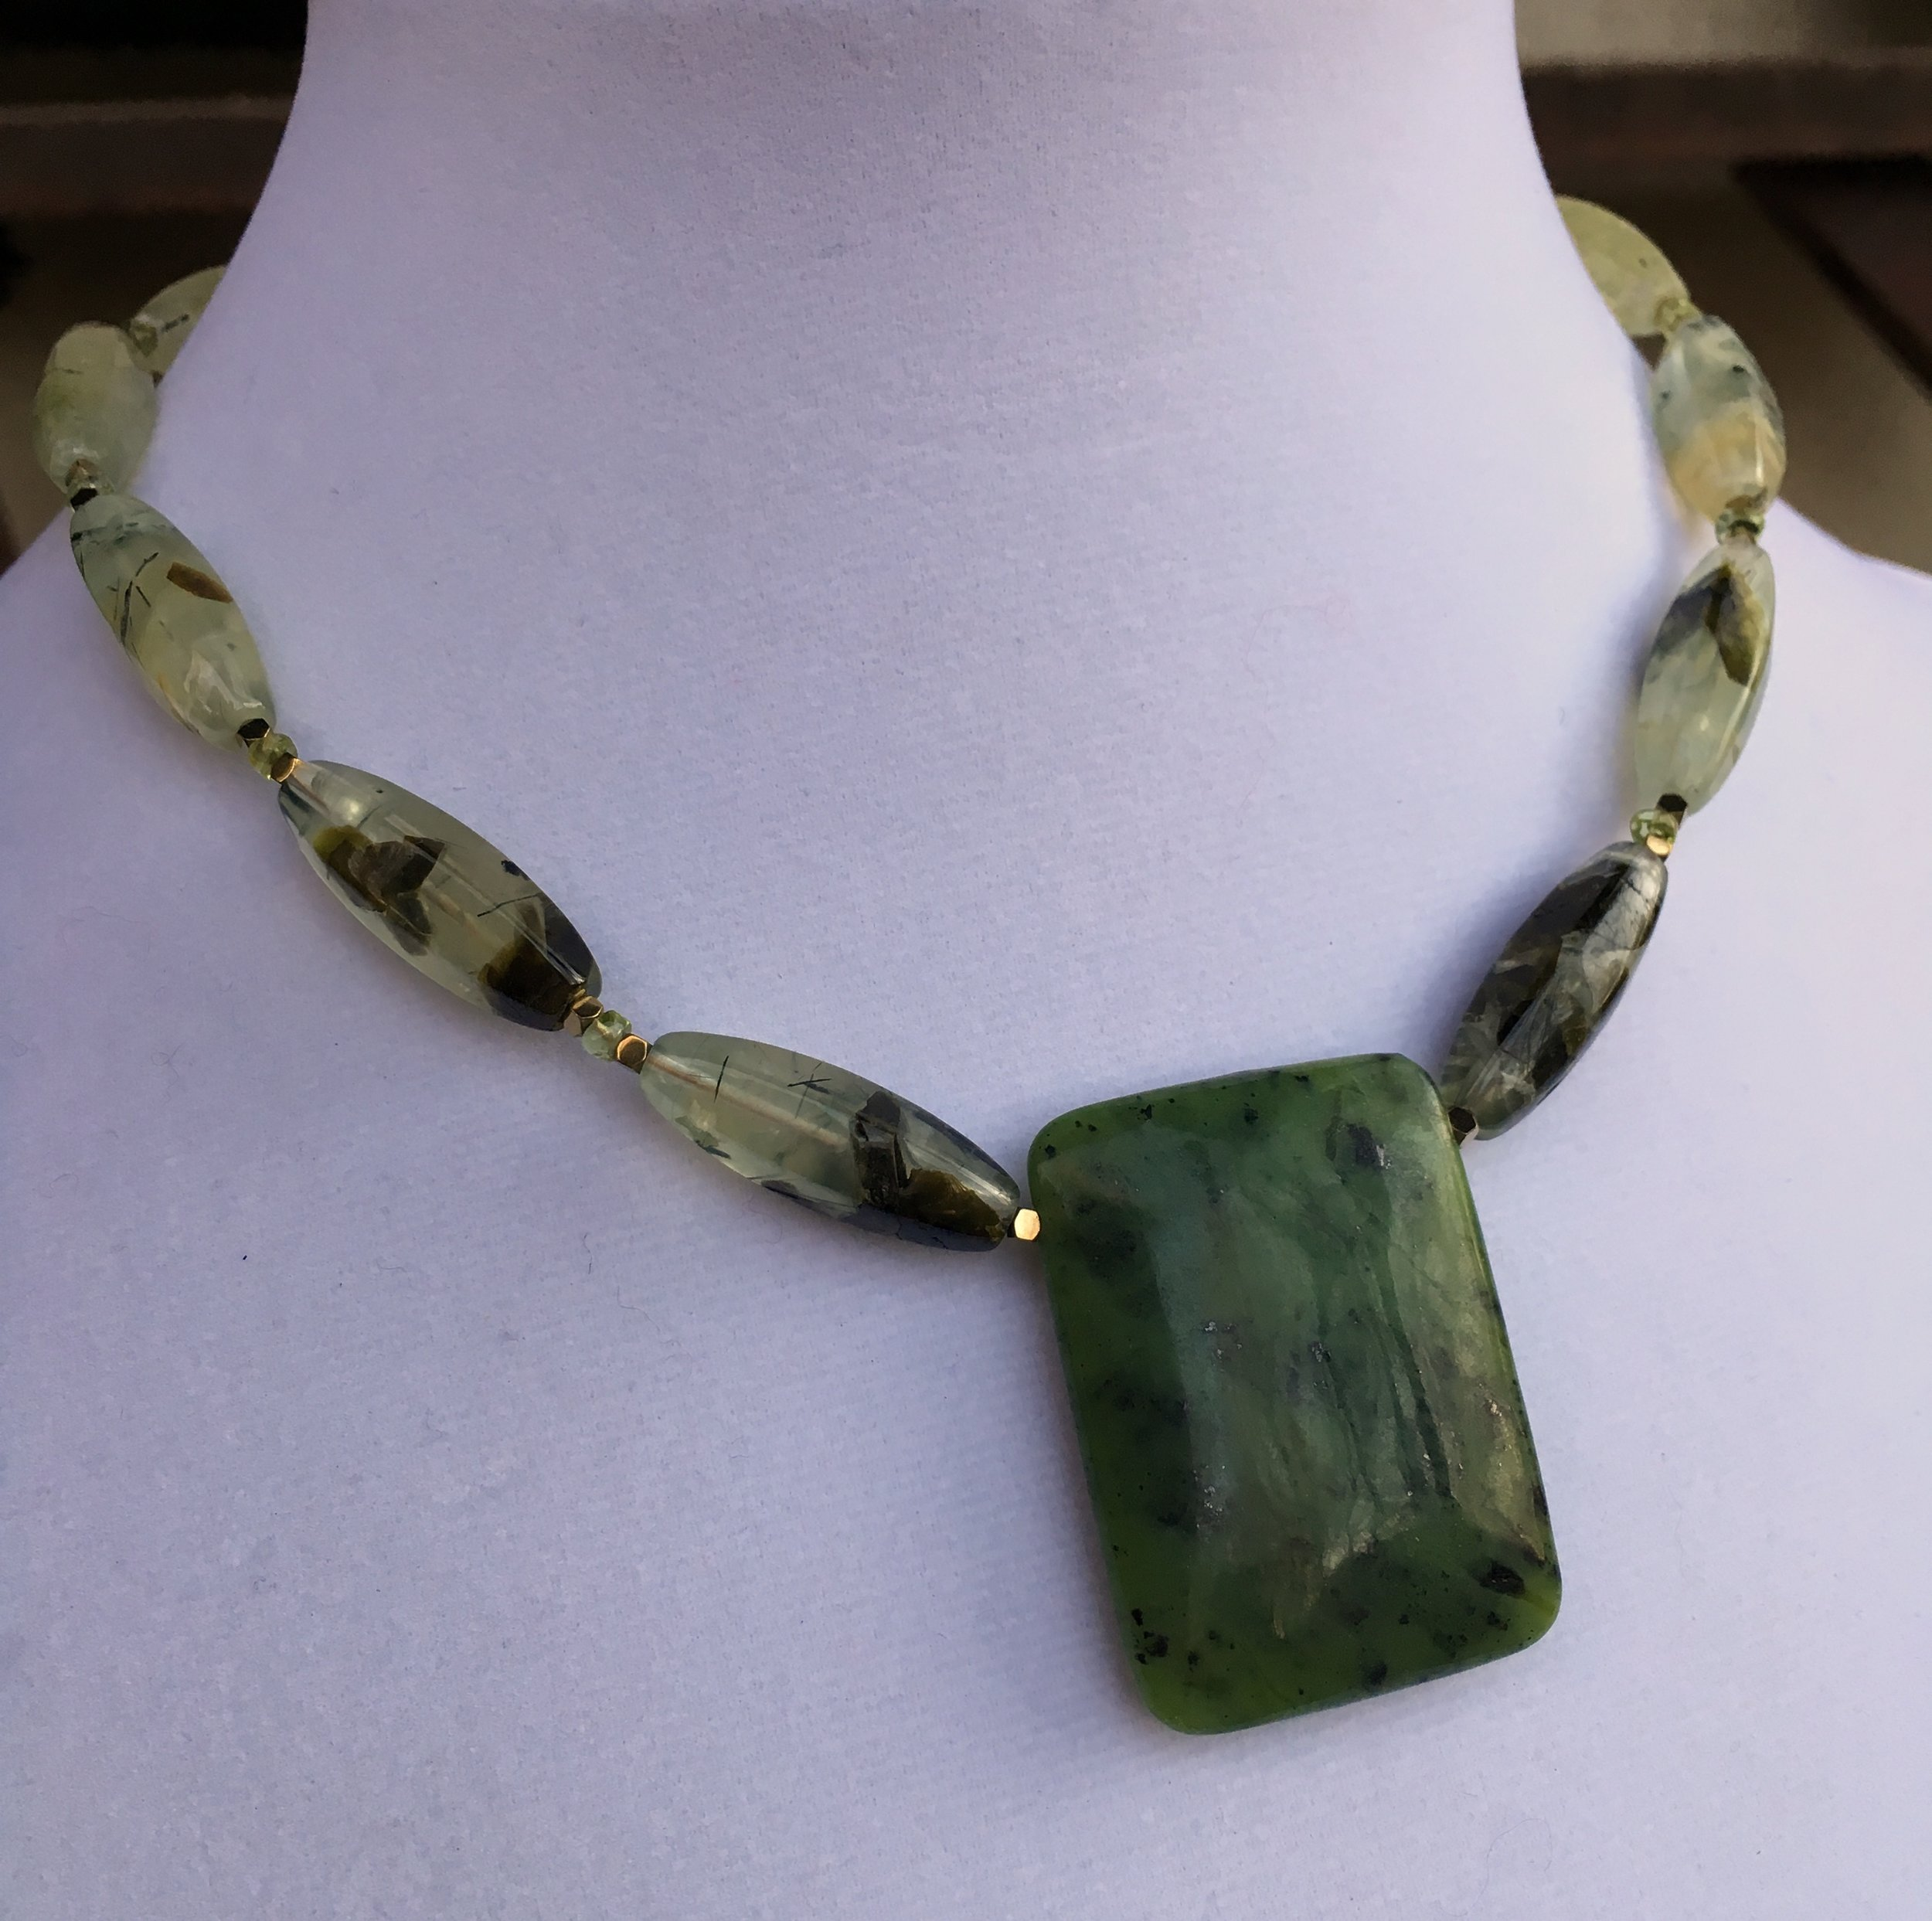 Jade pendant  30 x 40 mm Nephrite Jade Pendant. 26 x 8 mm prehnite fluted beads. Gold filled clasp. 17 in.$180